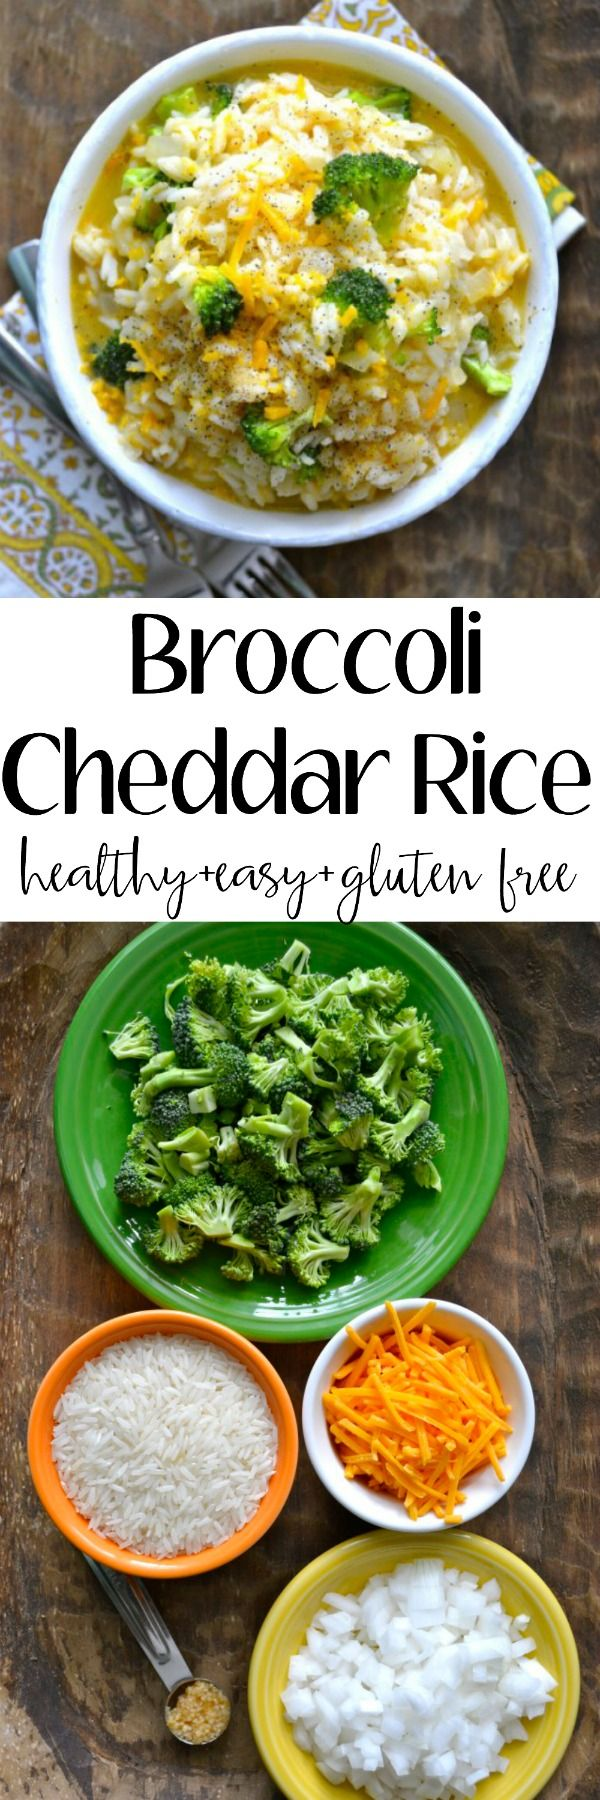 Perfect As An Easy Side Dish Or A Vegetarian Meal Loaded With Sharp Cheddar Tender Rice And Fresh Broccoli